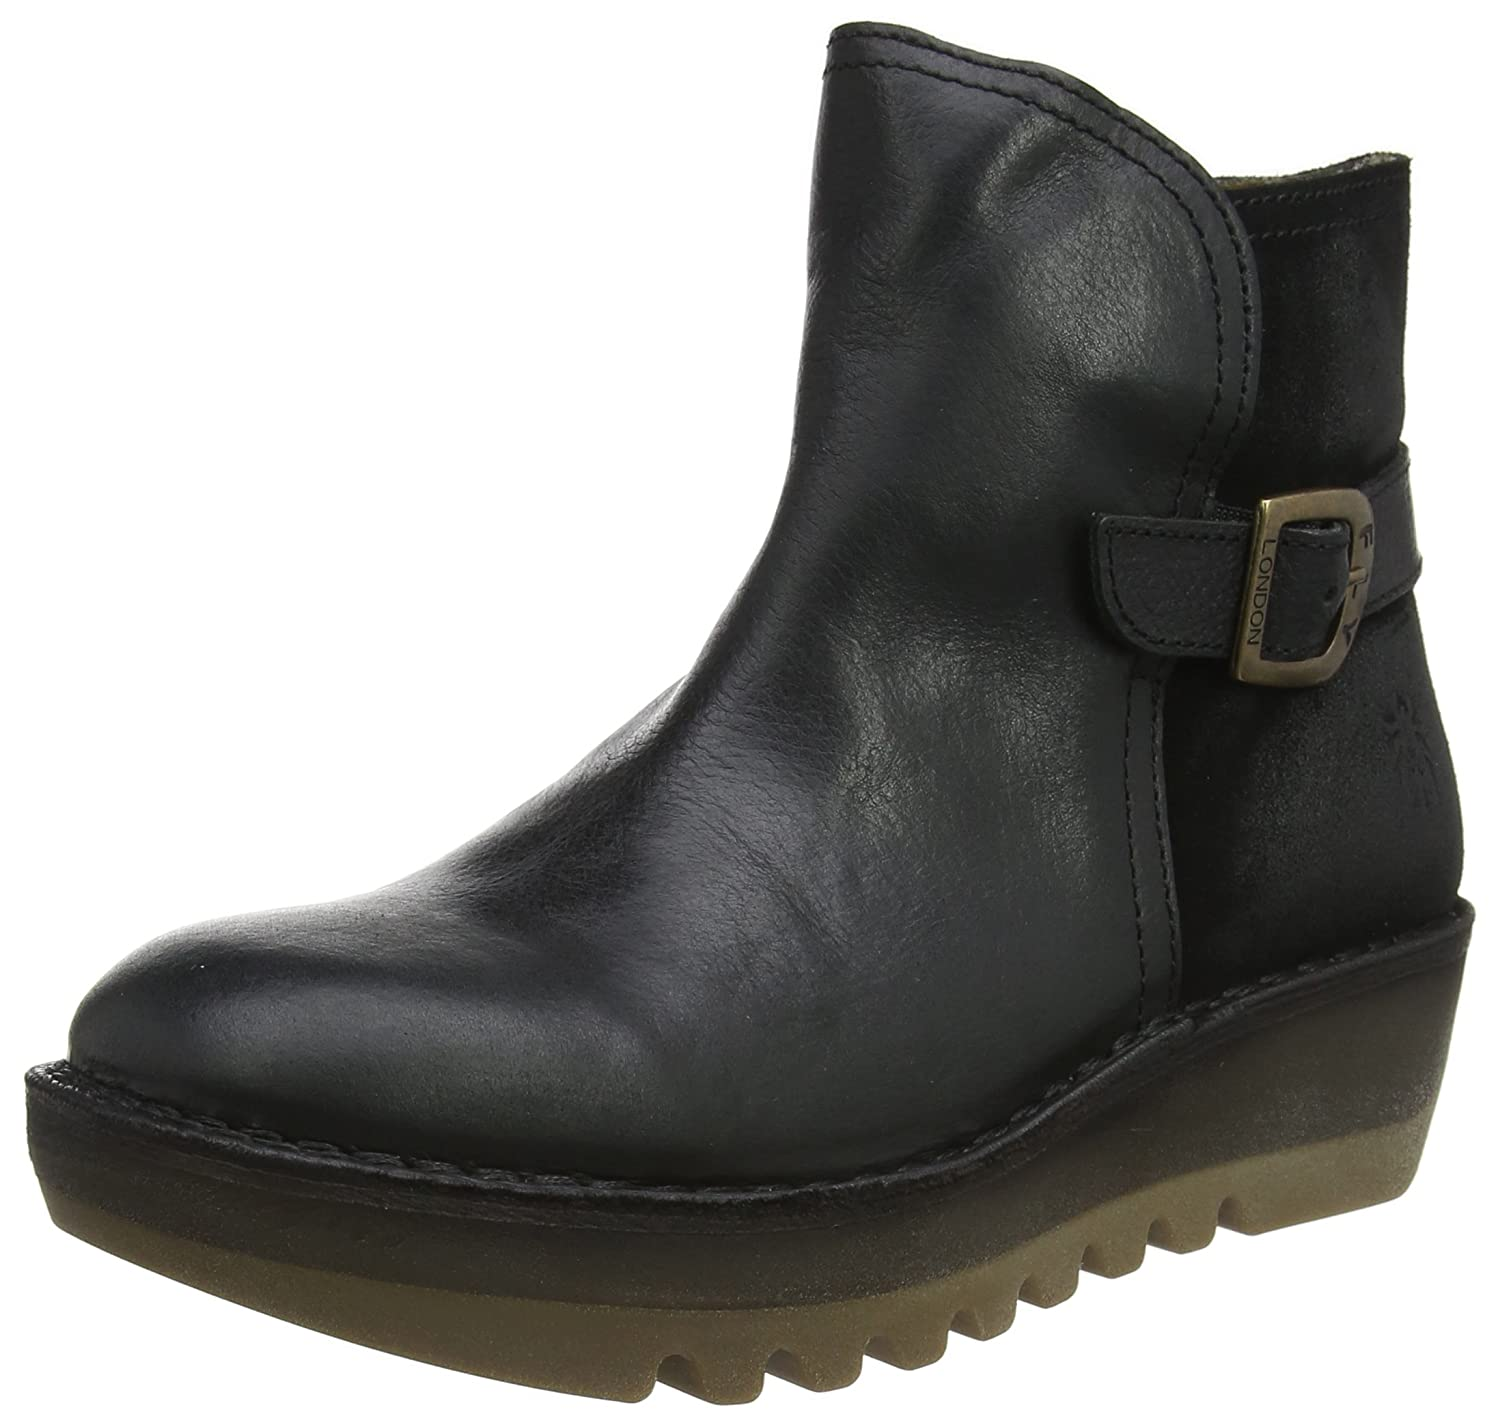 Fly London Josi956fly, Botas Para Mujer39 EU|Negro (Black)